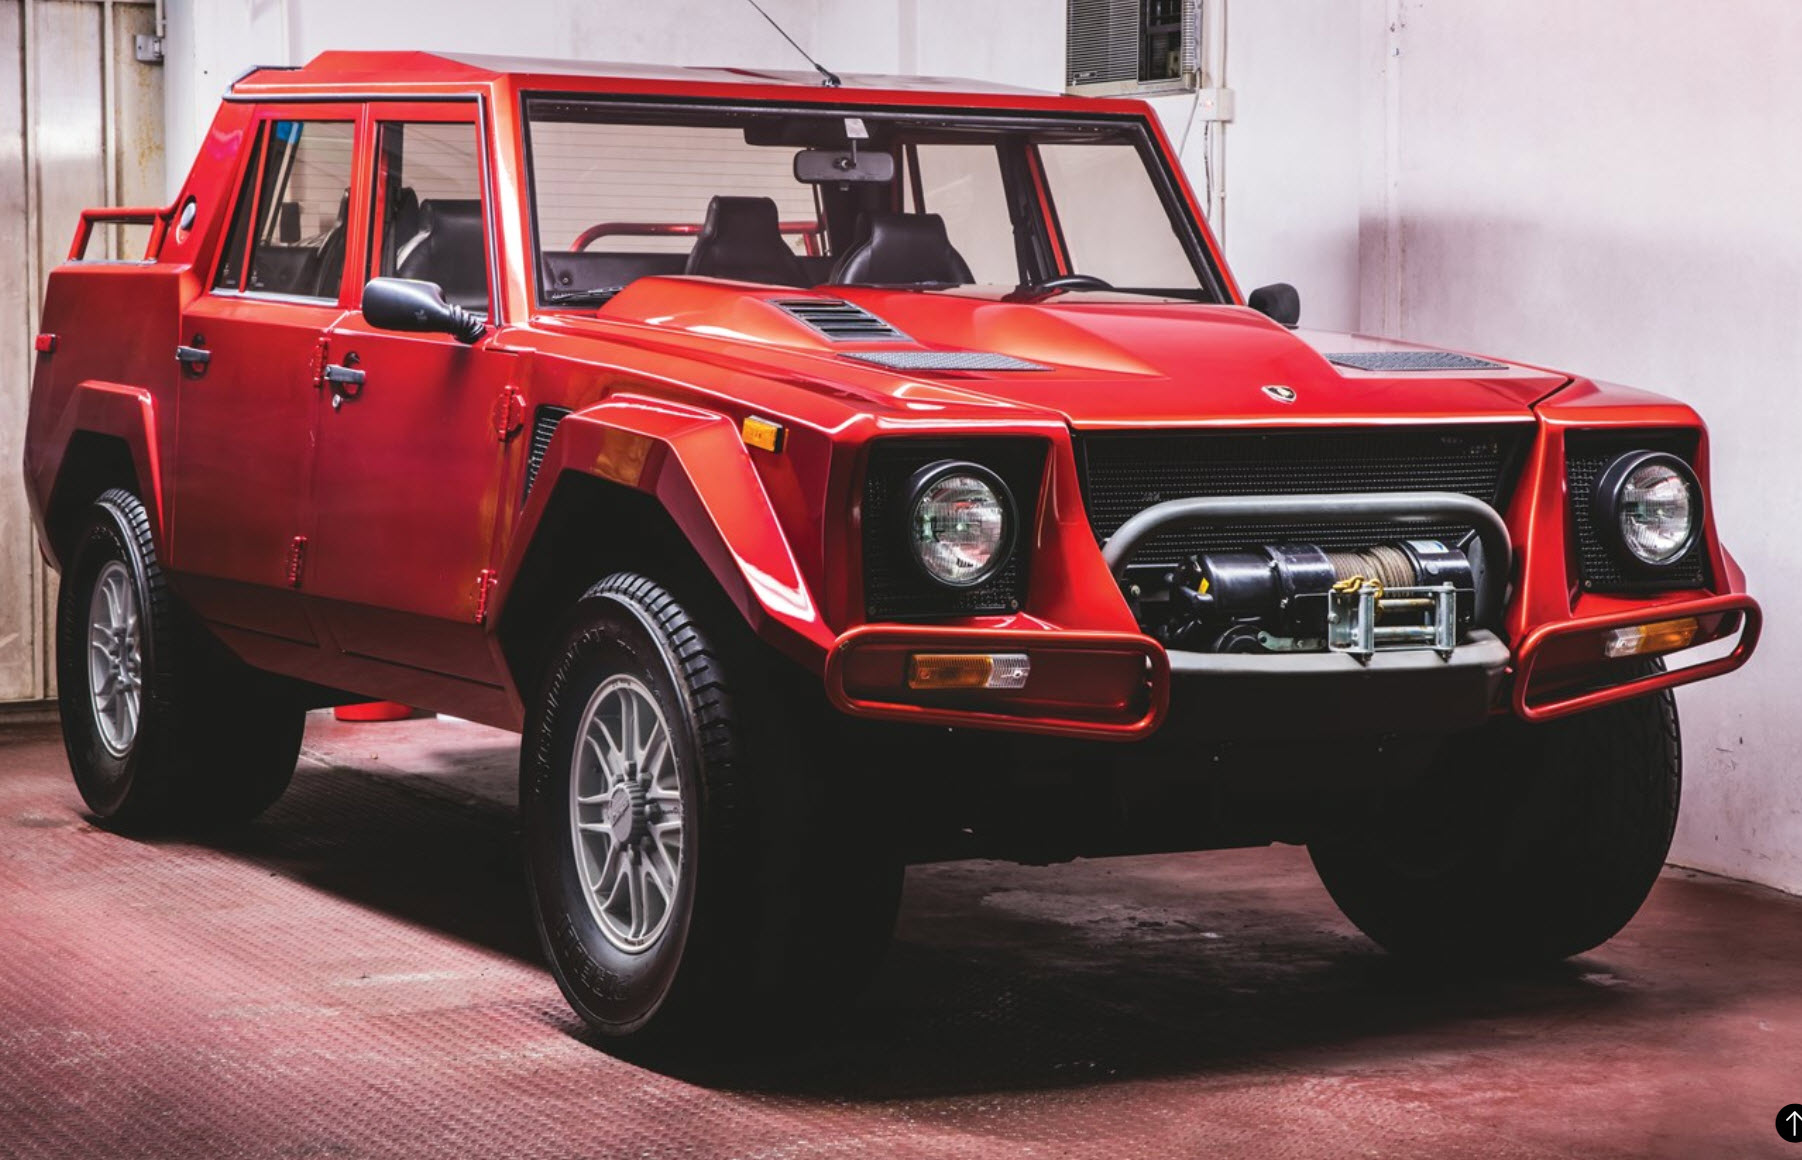 Ultra-rare offroad Lamborghini to fetch up to half a million at auction